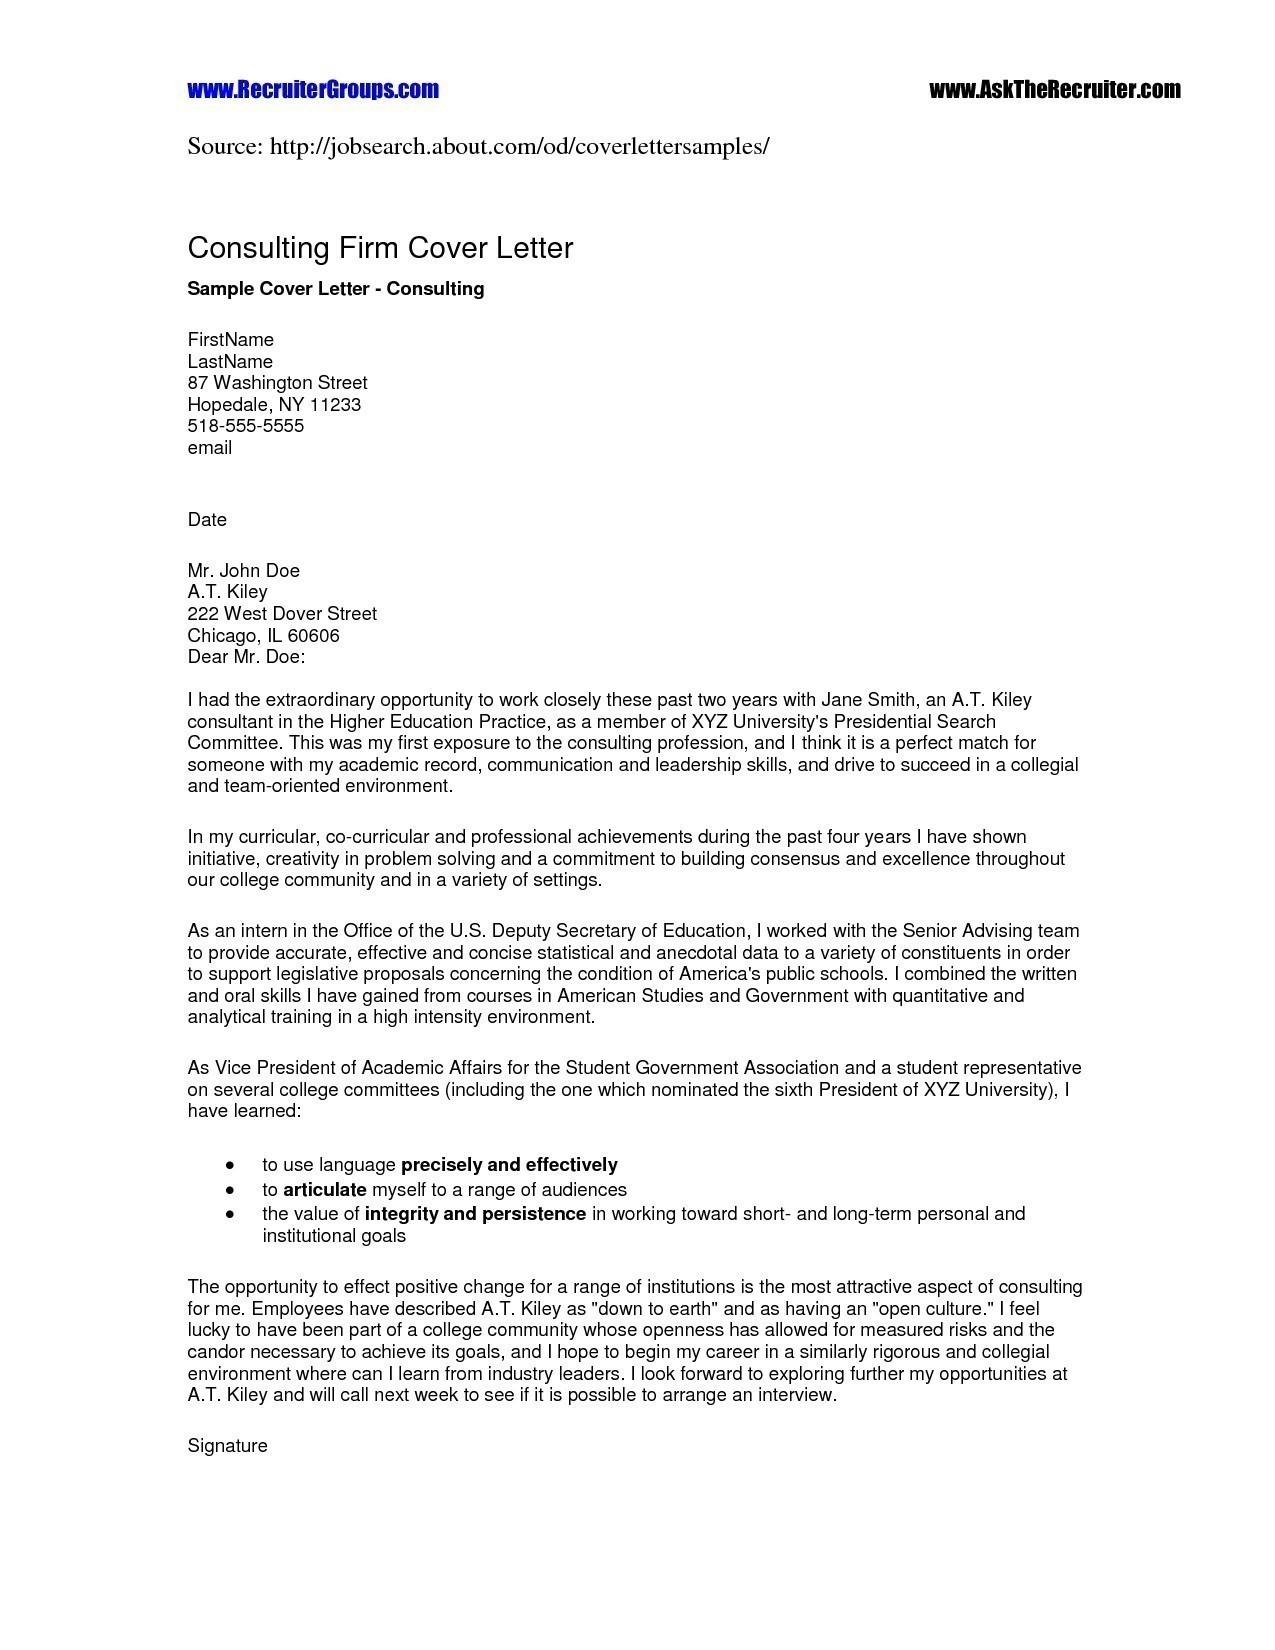 Confirmation Letter Template - How to Write Job Fer Letter Fresh Job Fer Letter Sample Best Job